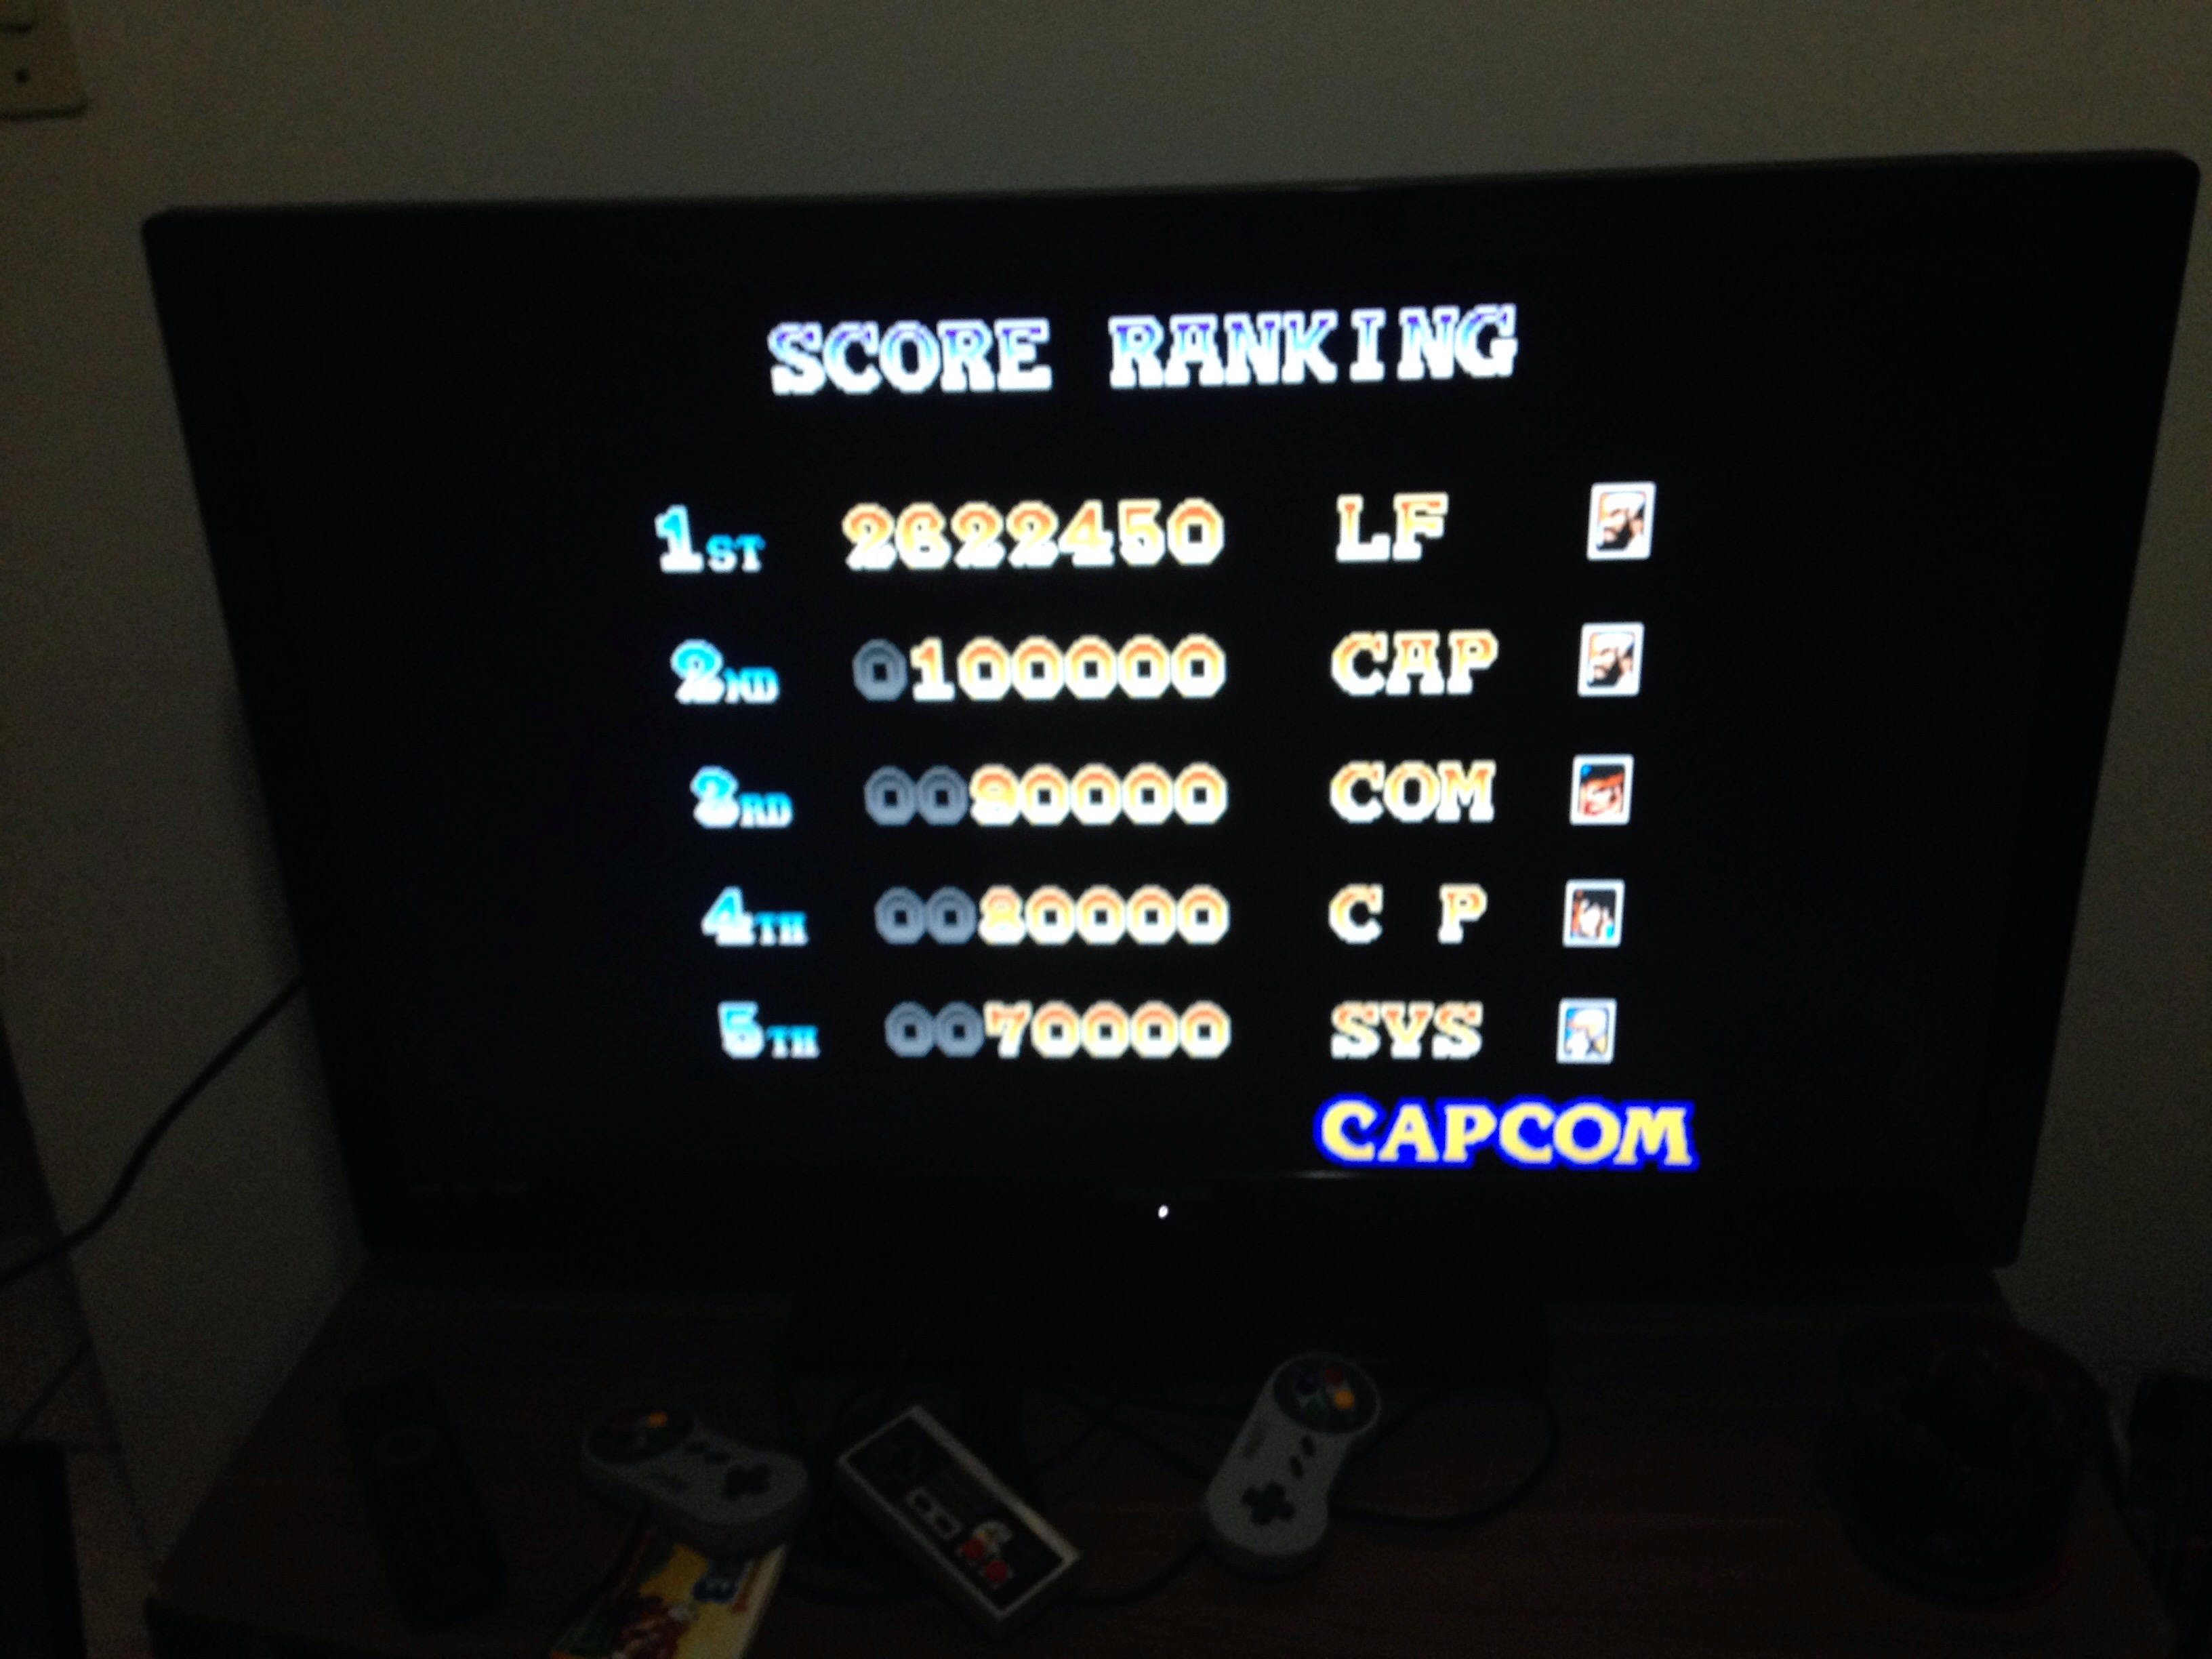 LoboFurioso: Warriors of Fate [wof] (Arcade Emulated / M.A.M.E.) 2,622,450 points on 2018-03-24 00:22:34